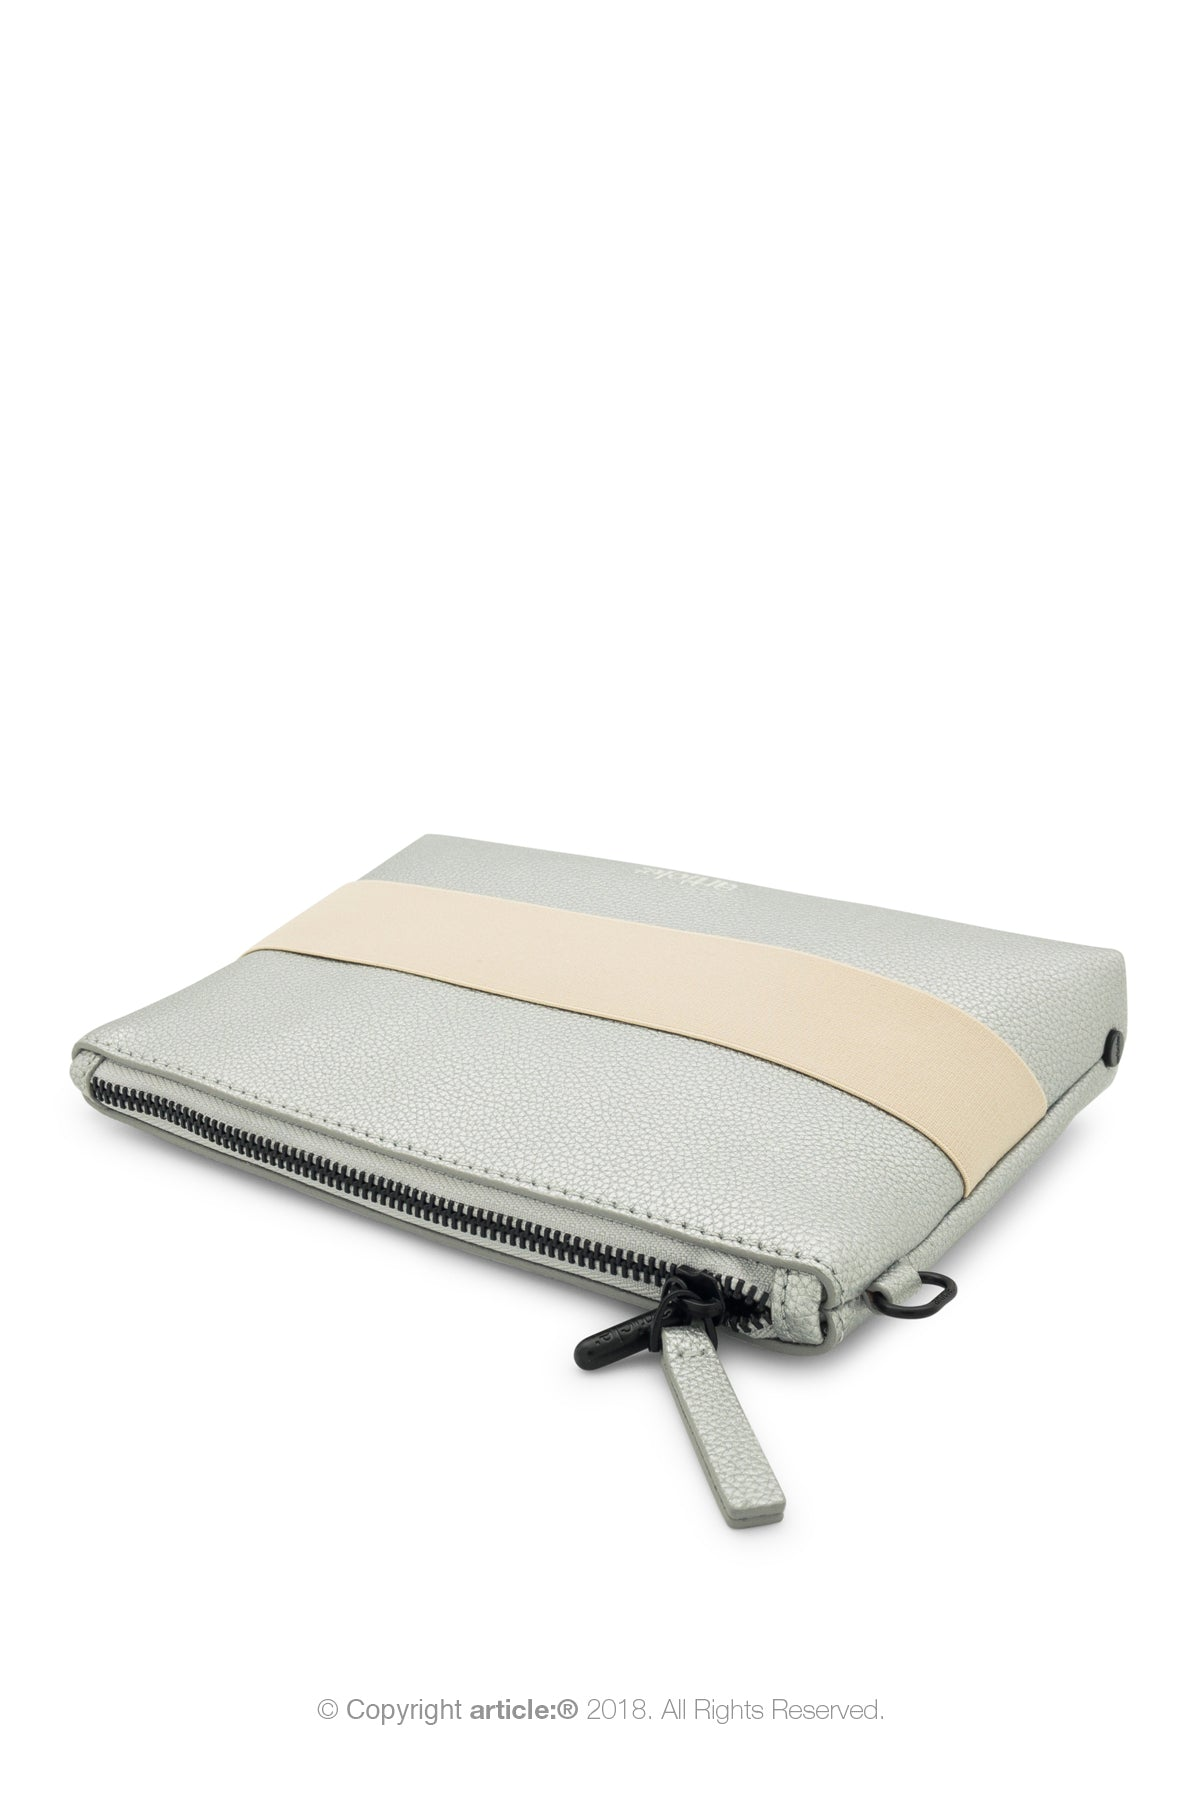 article: #015 Pochette Gusset - Silver